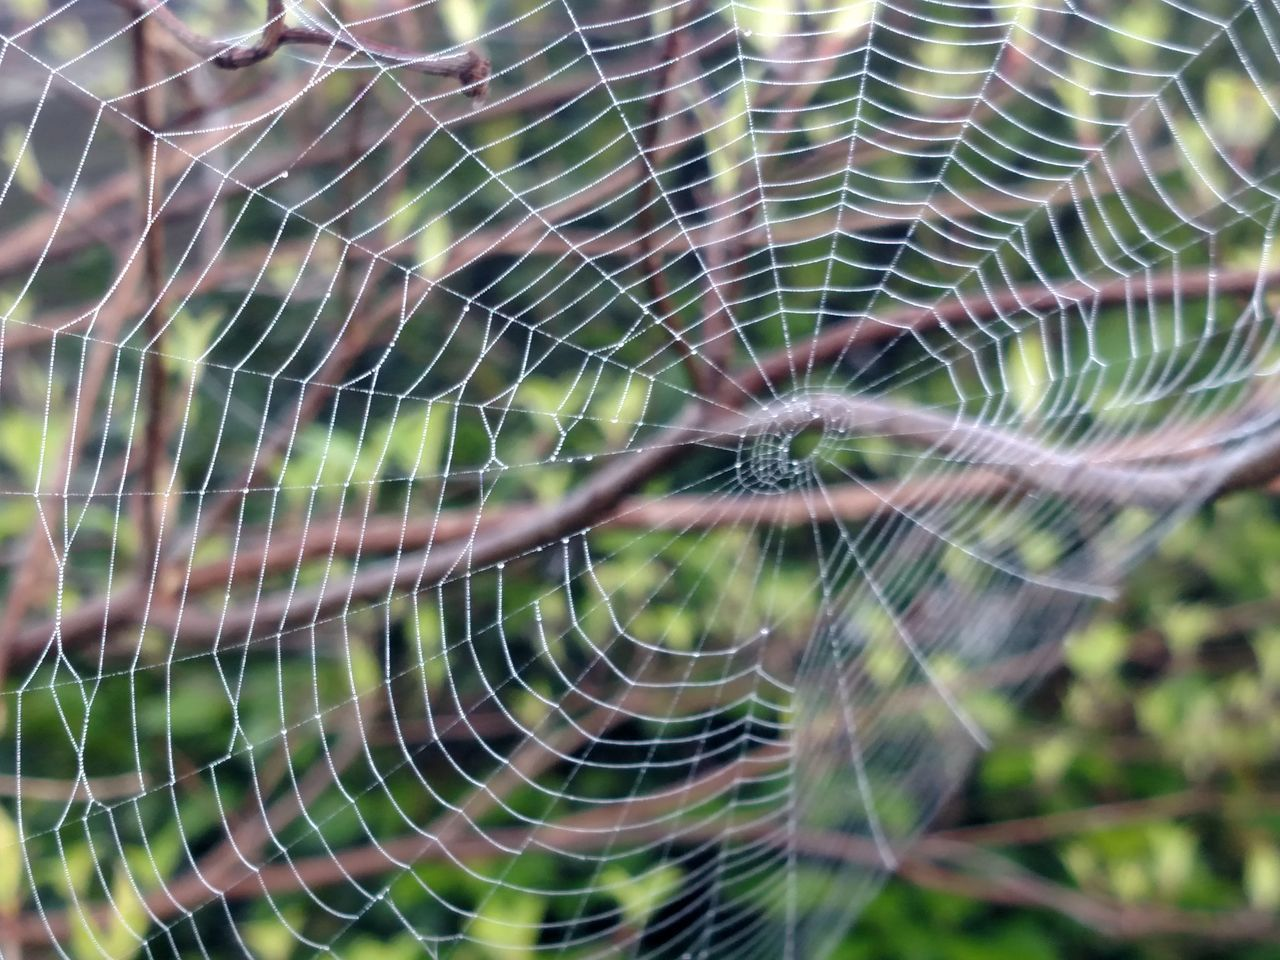 spider web, web, spider, nature, spinning, focus on foreground, outdoors, close-up, no people, fragility, beauty in nature, survival, intricacy, day, trapped, animal themes, freshness